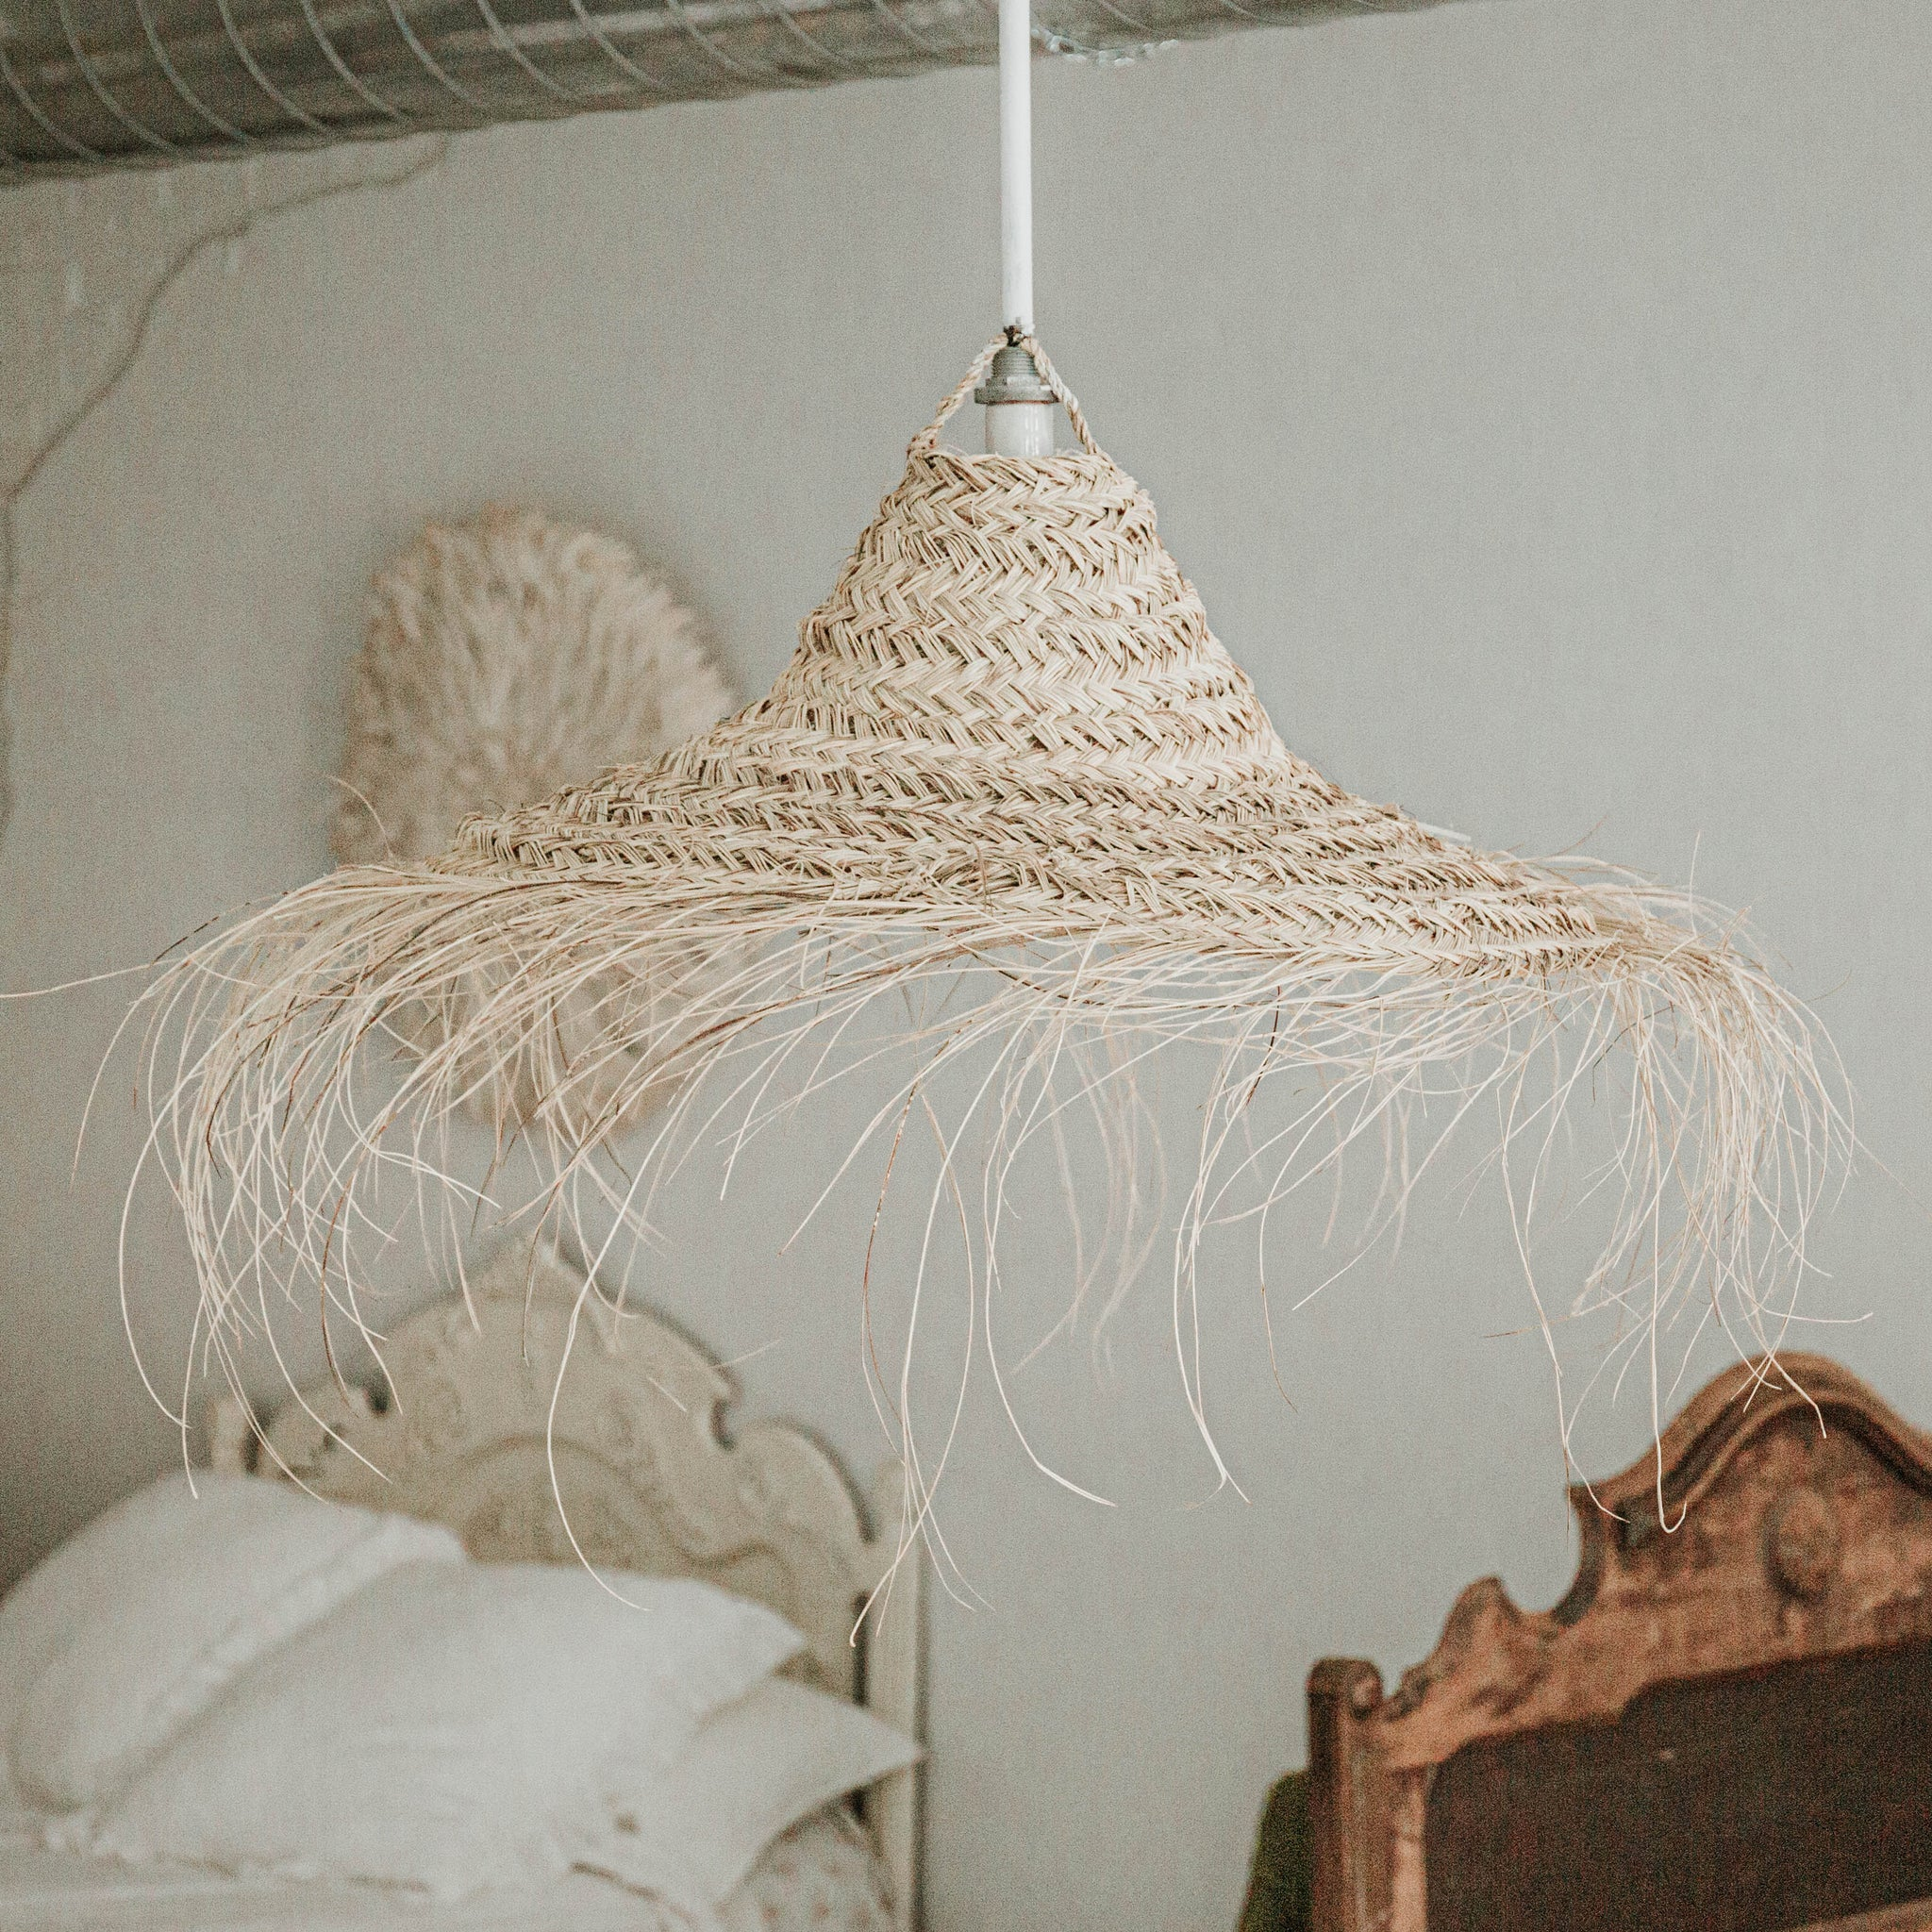 Moroccan Straw Hat Chandelier